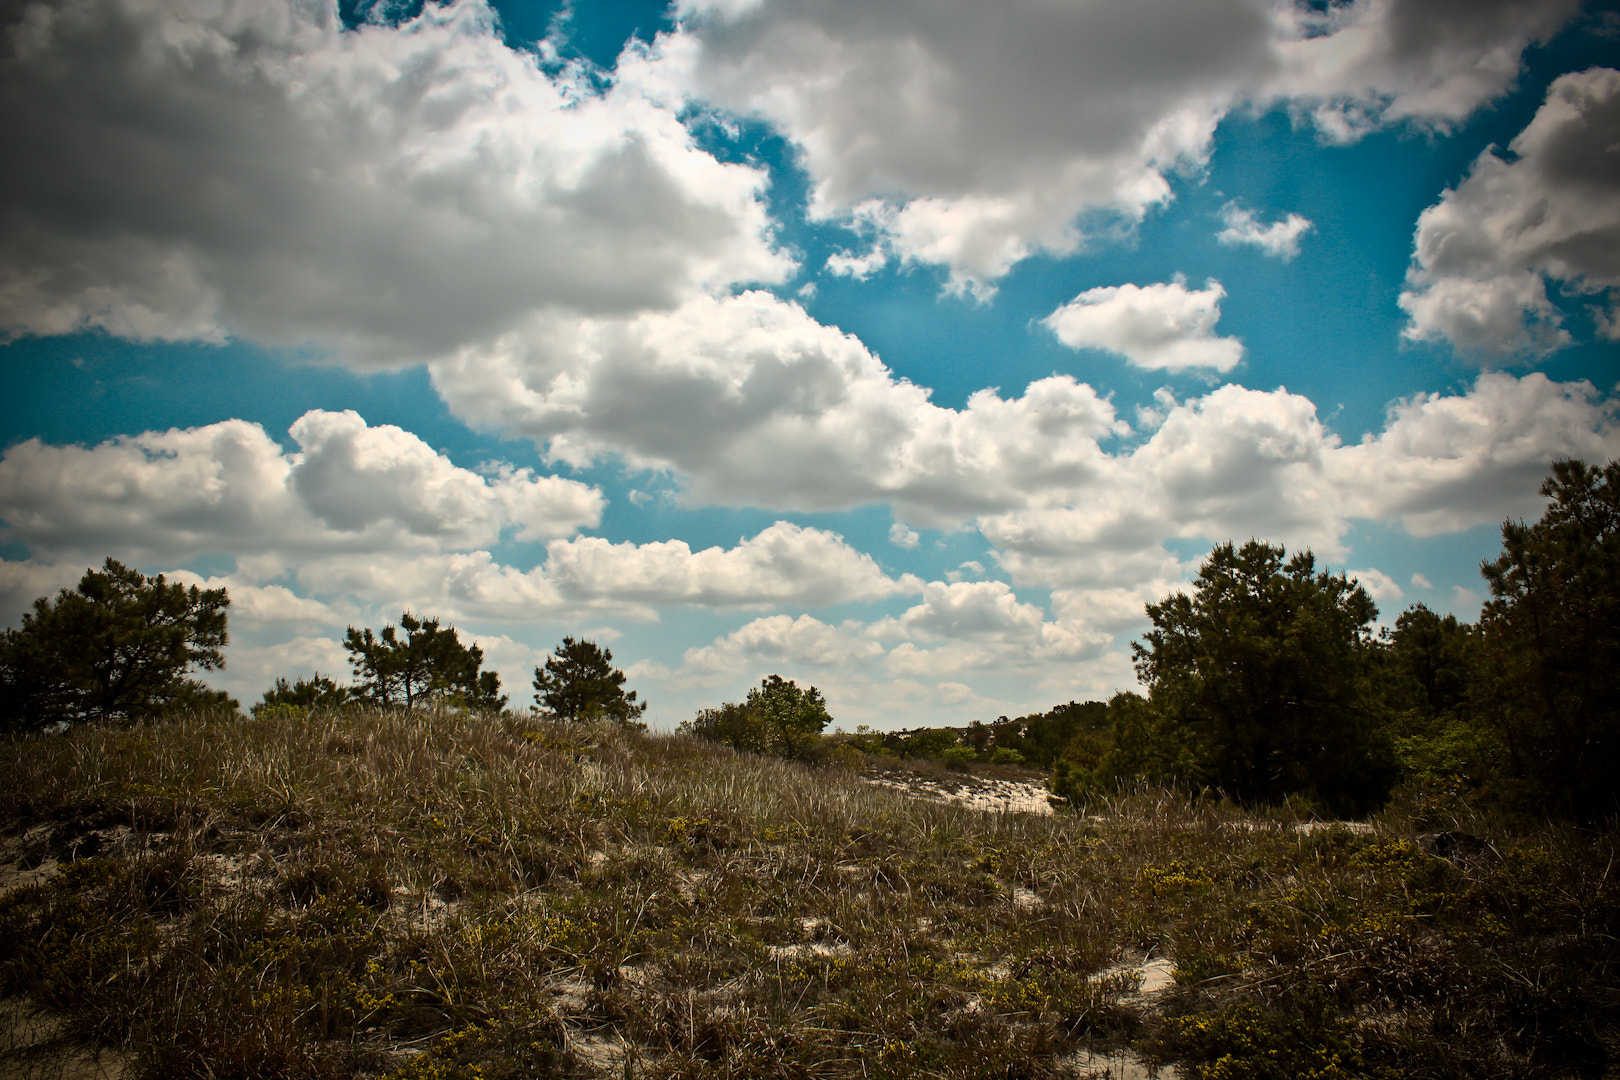 Photograph Cape Henlopen Dunes by Paul Ney Photography on 500px